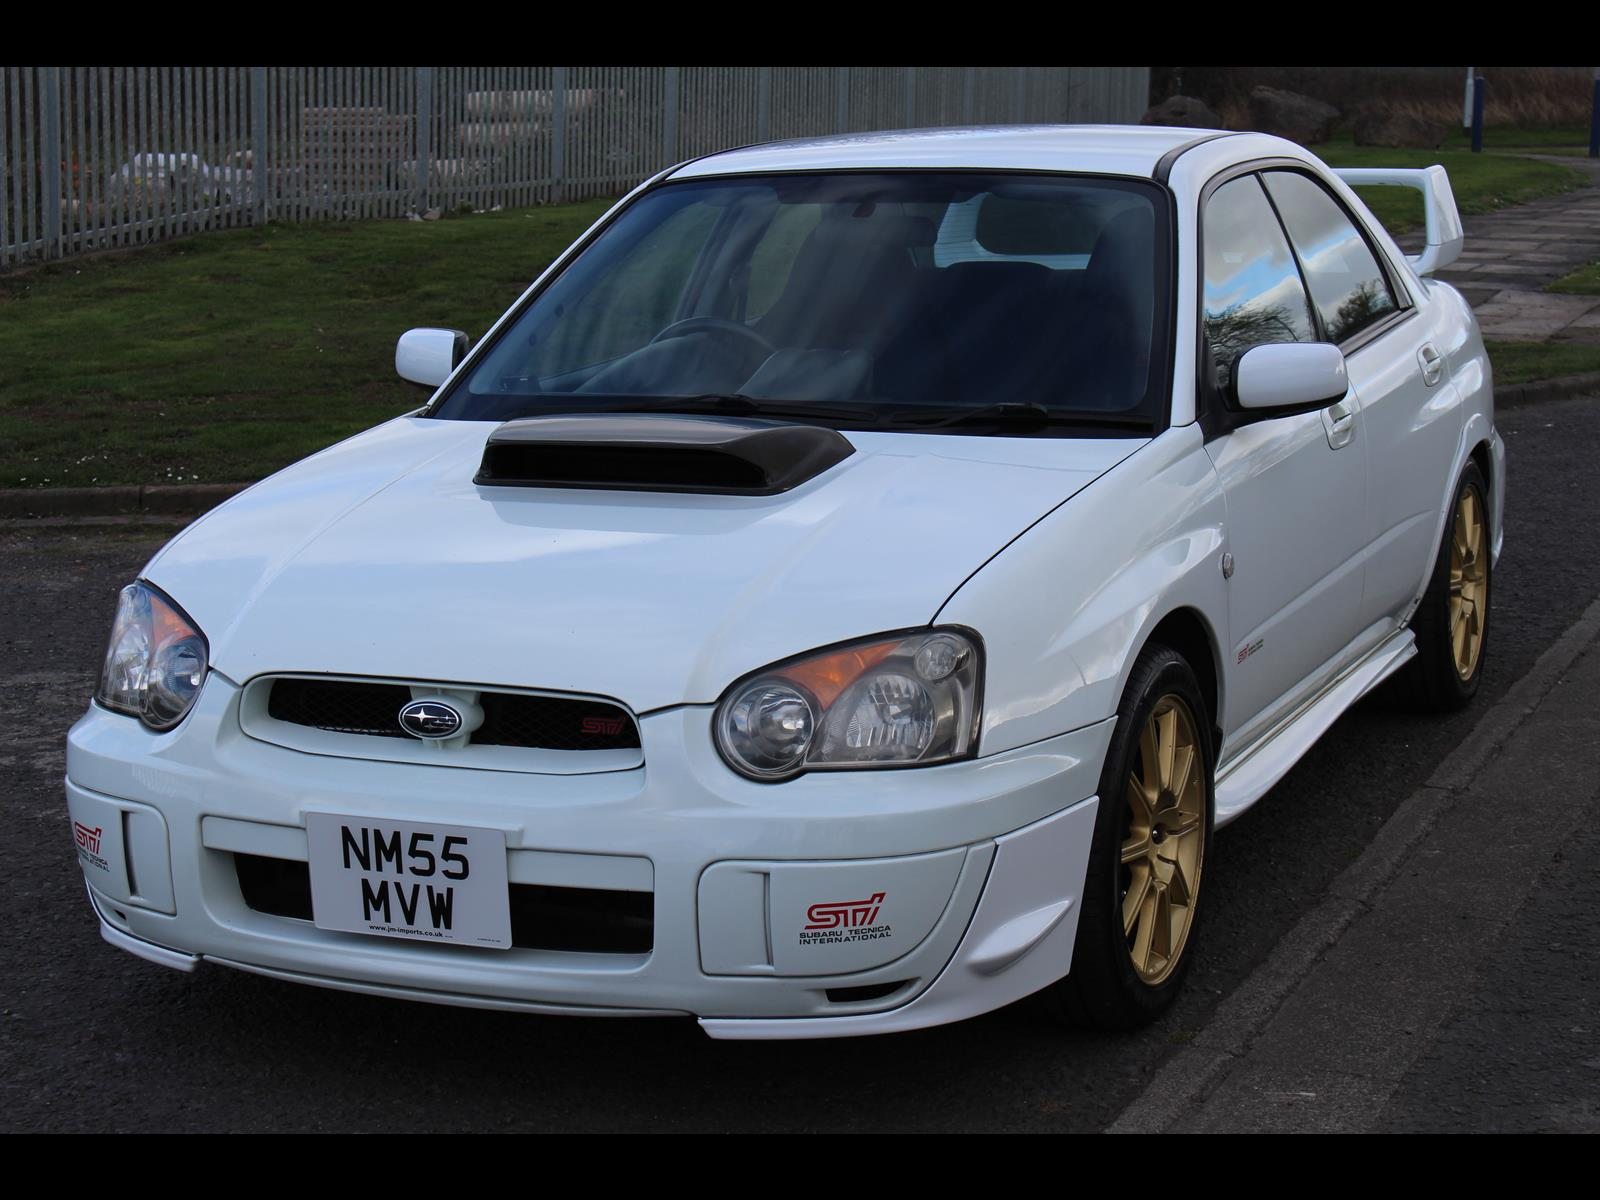 2006 subaru impreza wrx sti 6 speed manual. Black Bedroom Furniture Sets. Home Design Ideas